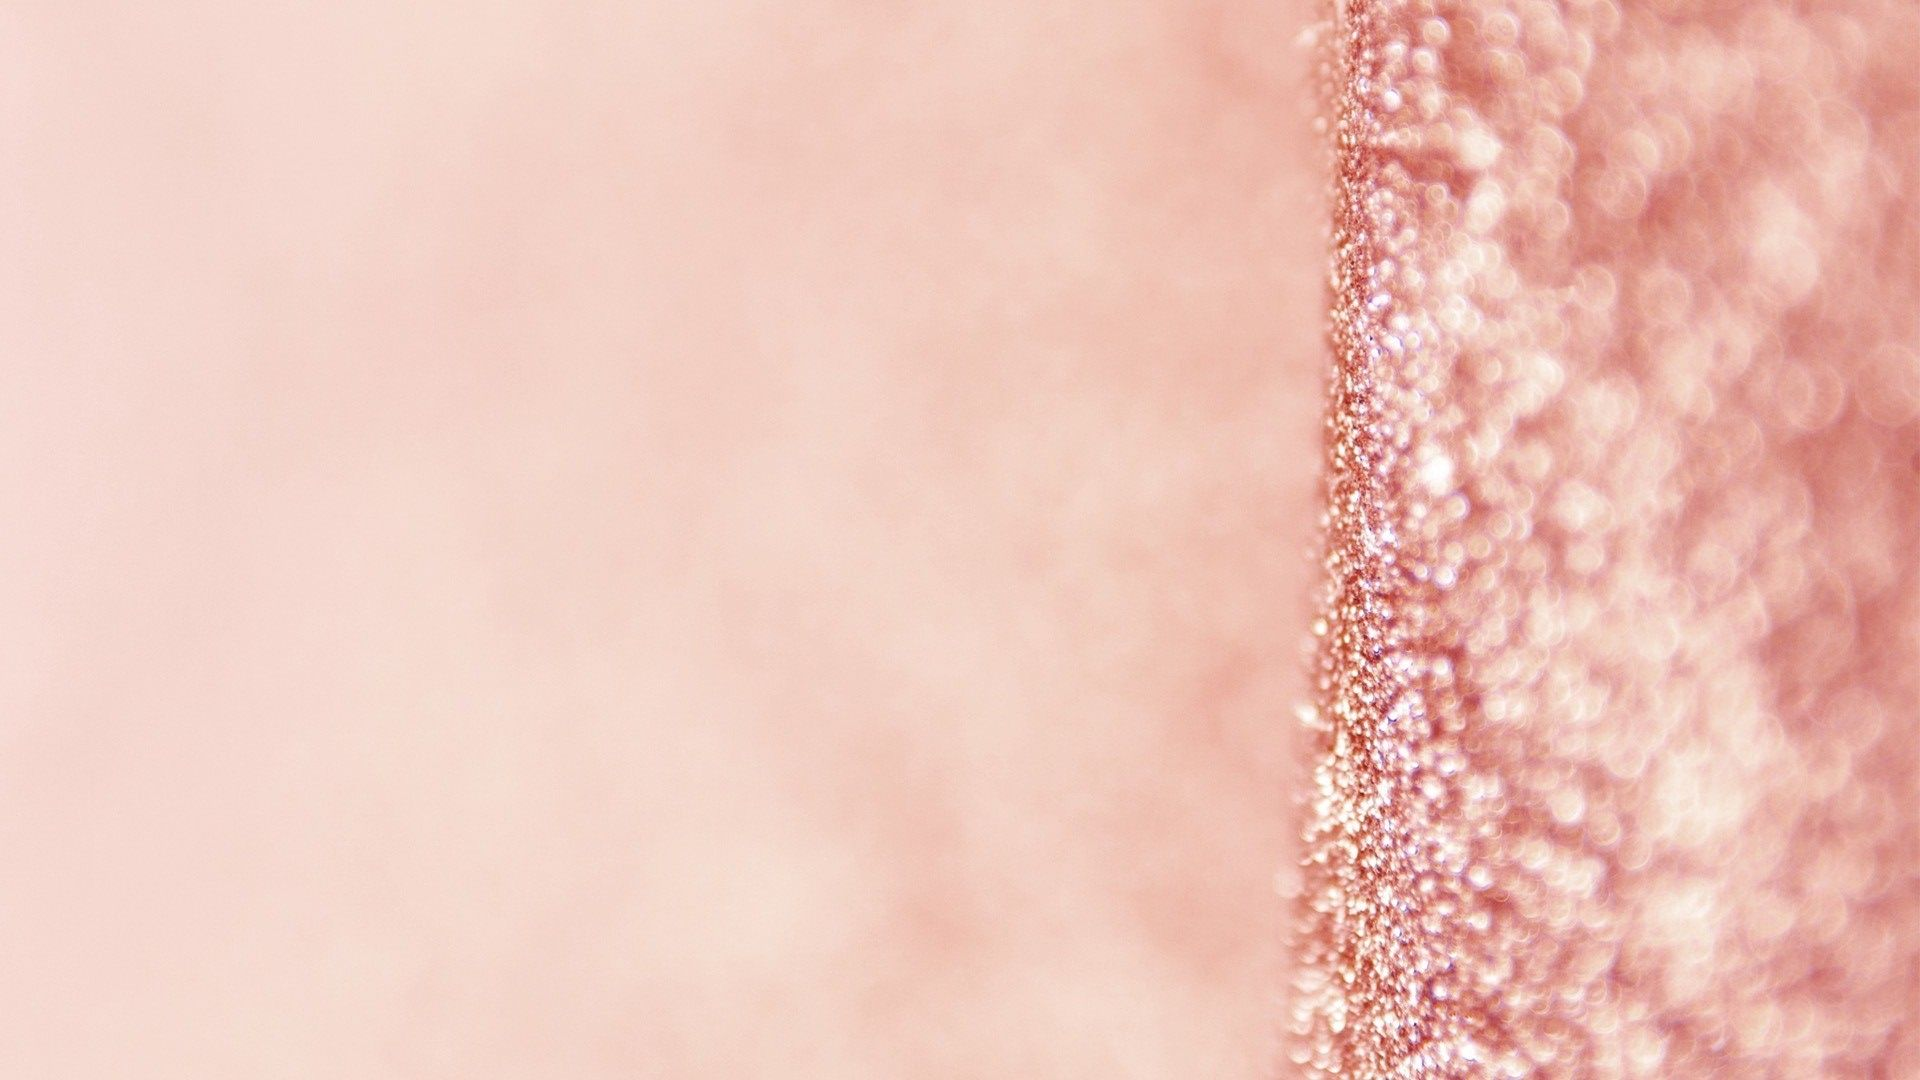 Rose Gold Glitter Wallpaper Best Hd Wallpapers Rose Gold Glitter Wallpaper Glitter Wallpaper Glitter Quotes